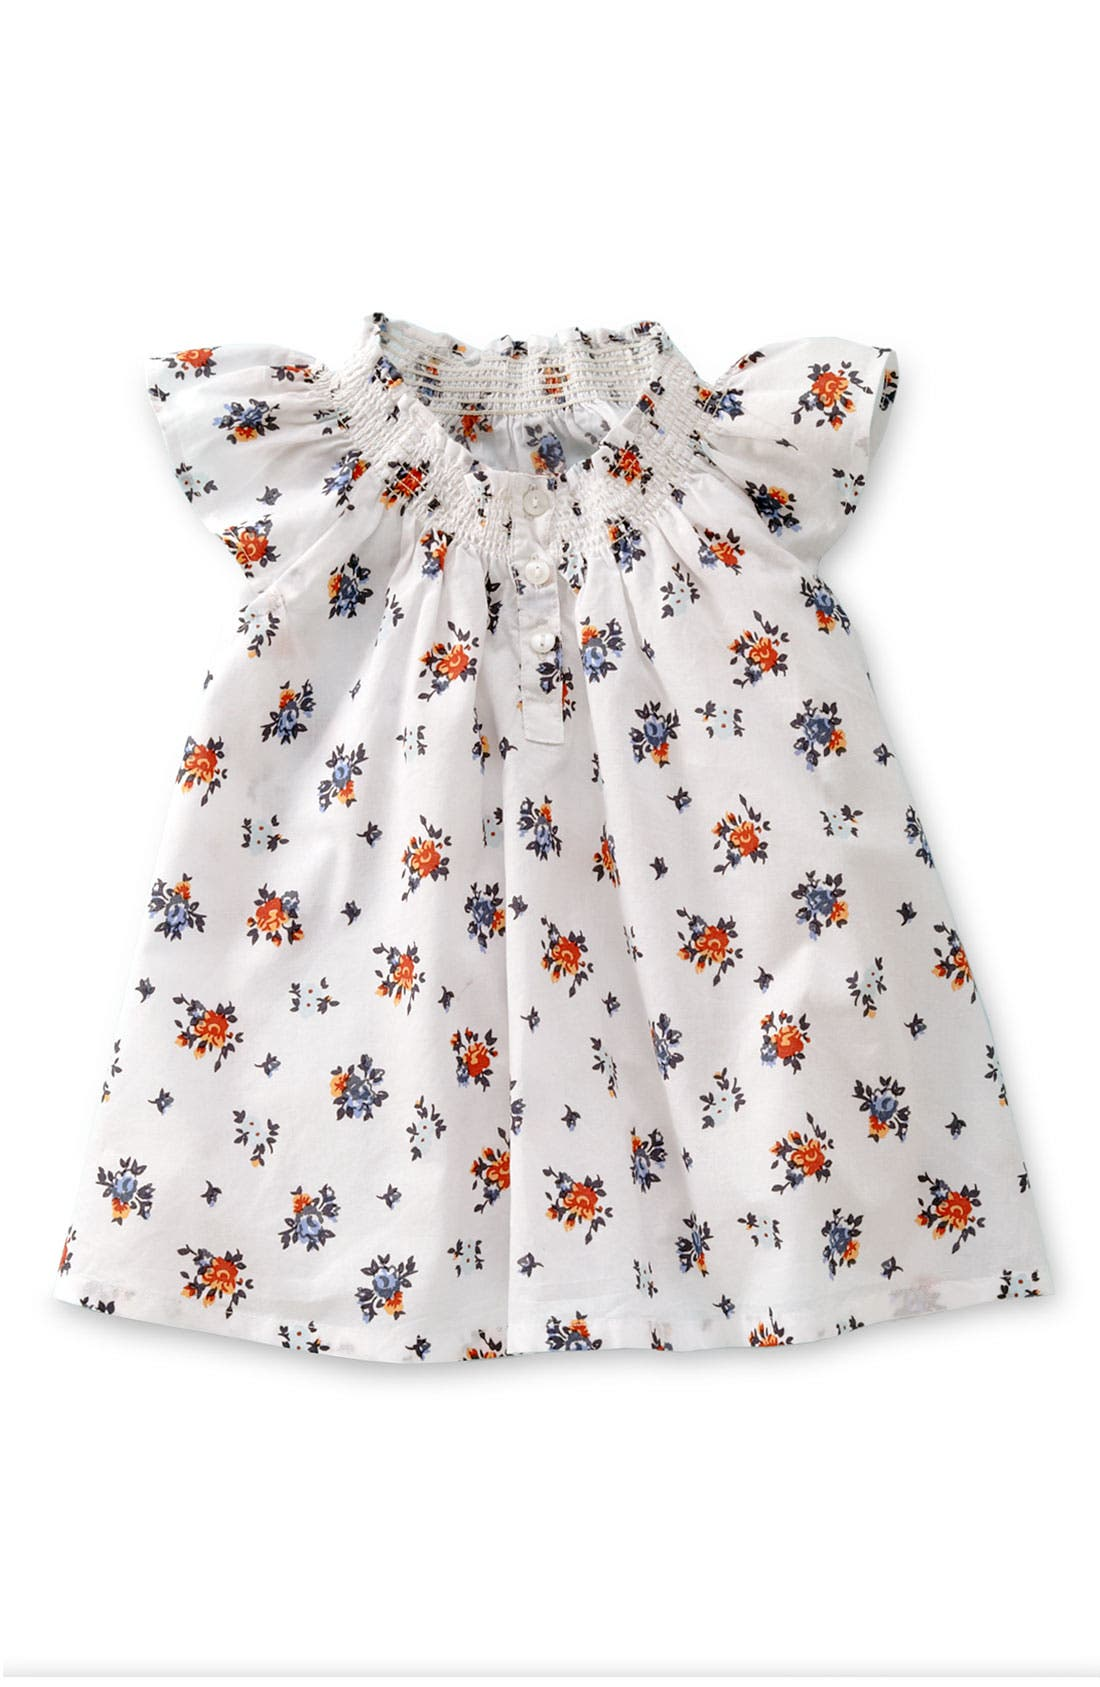 Alternate Image 1 Selected - Mini Boden 'Gypsy' Top (Little Girls & Big Girls)